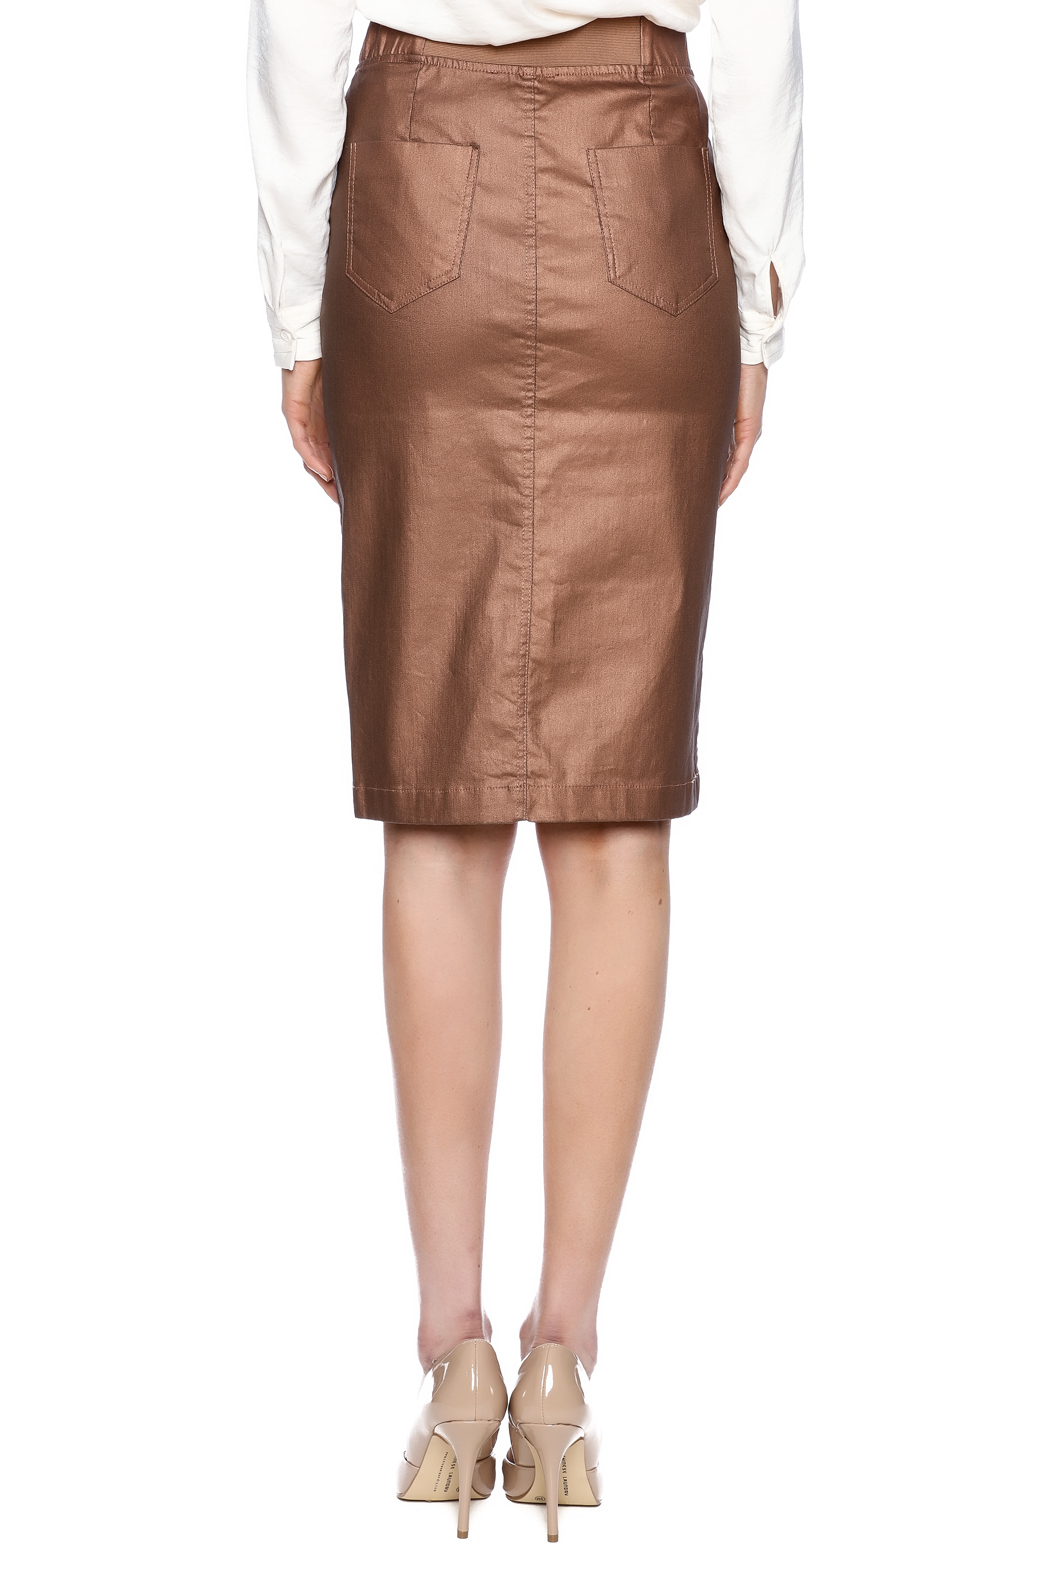 Kikiriki Metallic Jean Pencil Skirt - Back Cropped Image